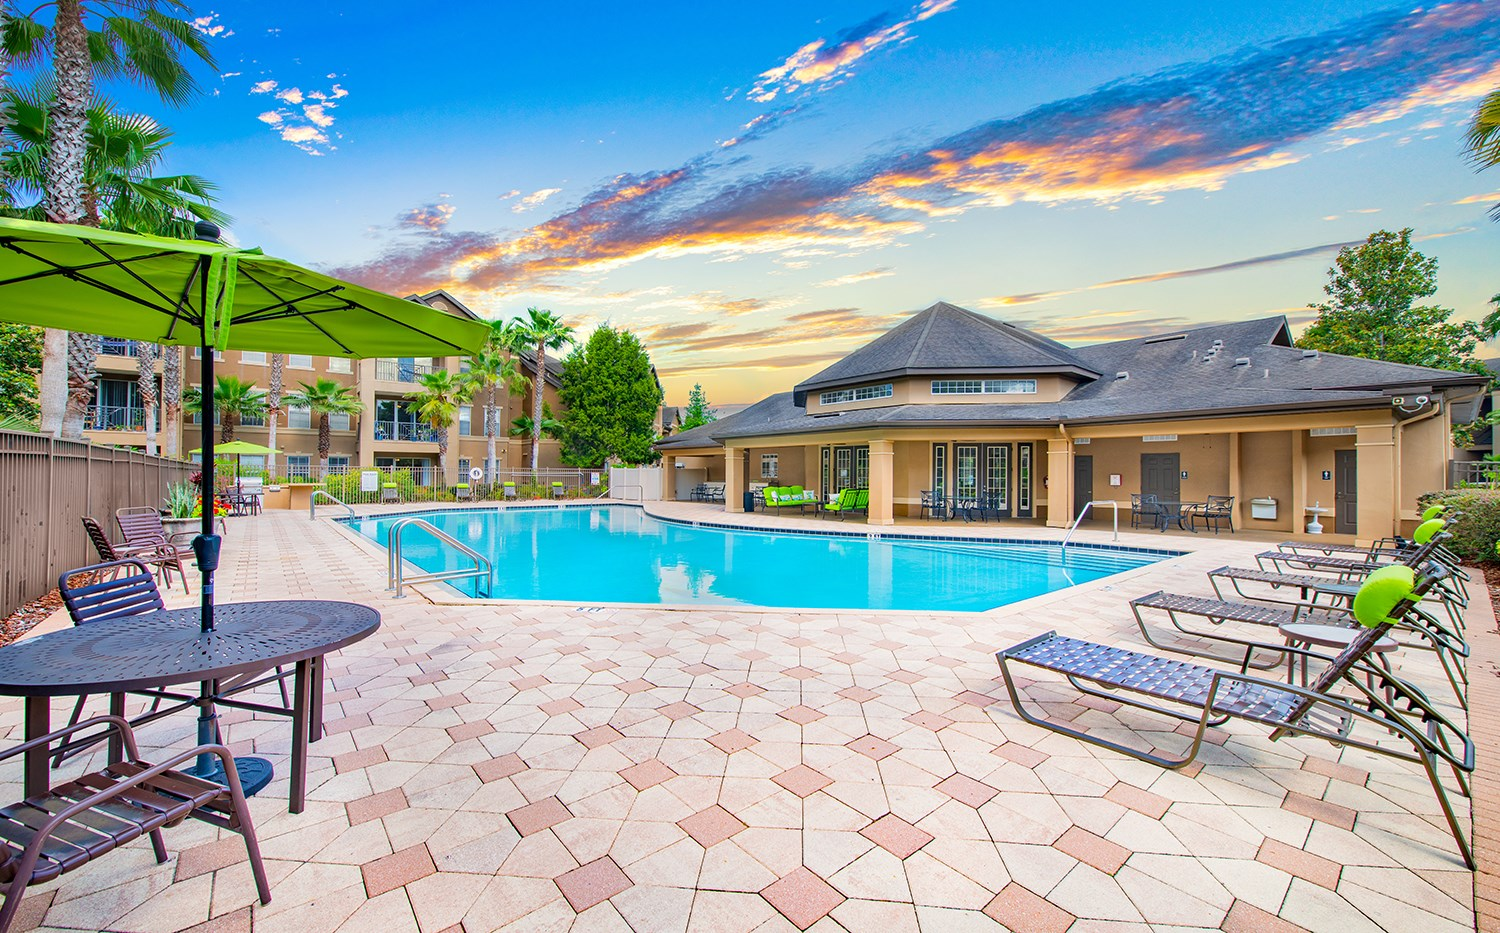 Best 1 Bedroom Apartments in Tampa, FL: from $691 | RENTCafé